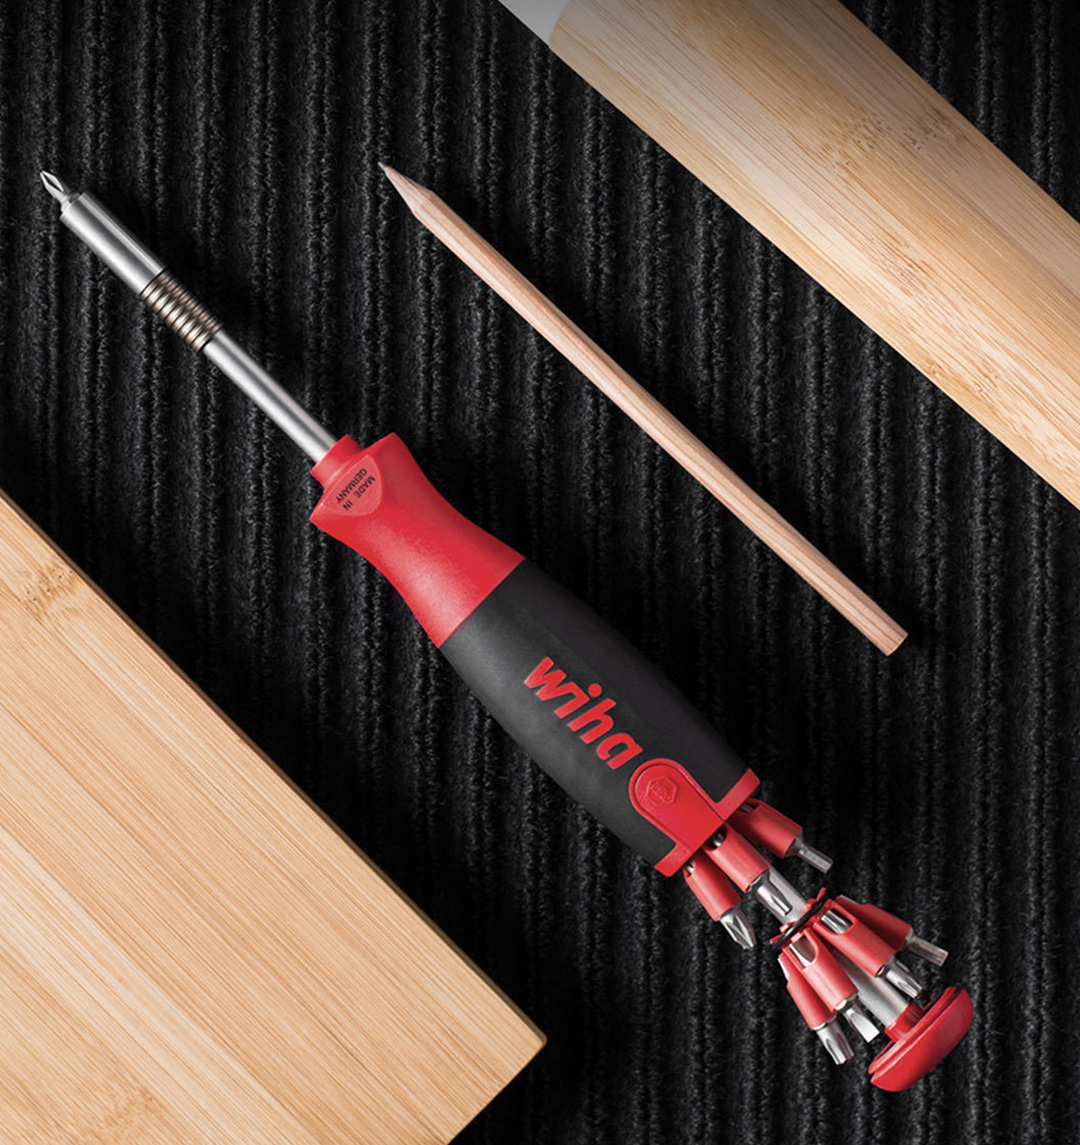 Xiaomi Wiha 26-in-1 Screwdriver